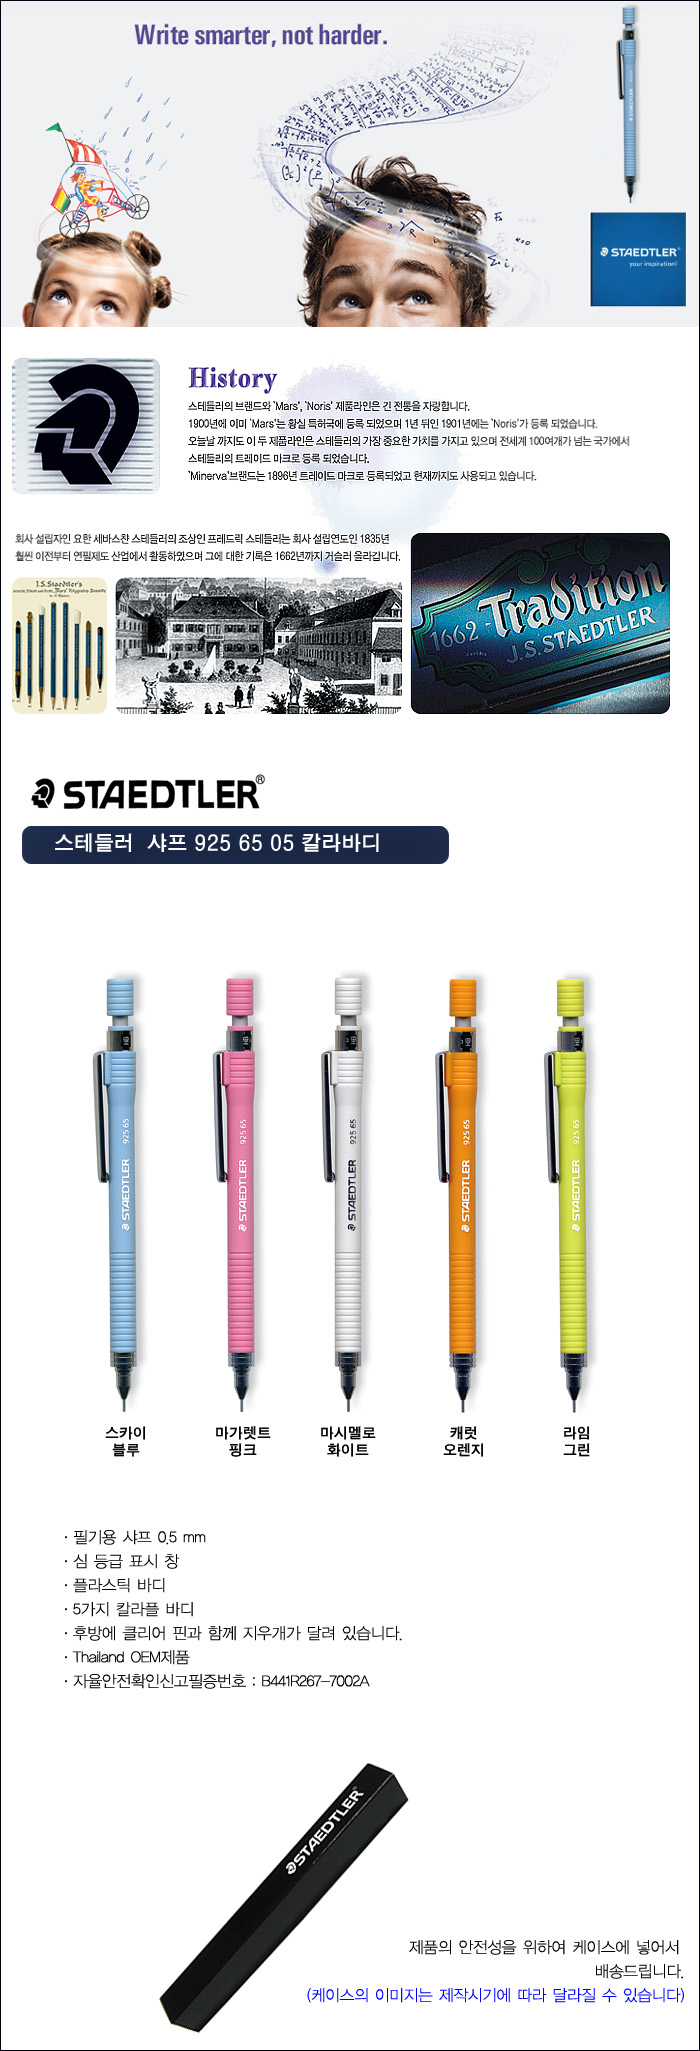 STAEDTLER 925 65 0.5mm Mechanical Pencil